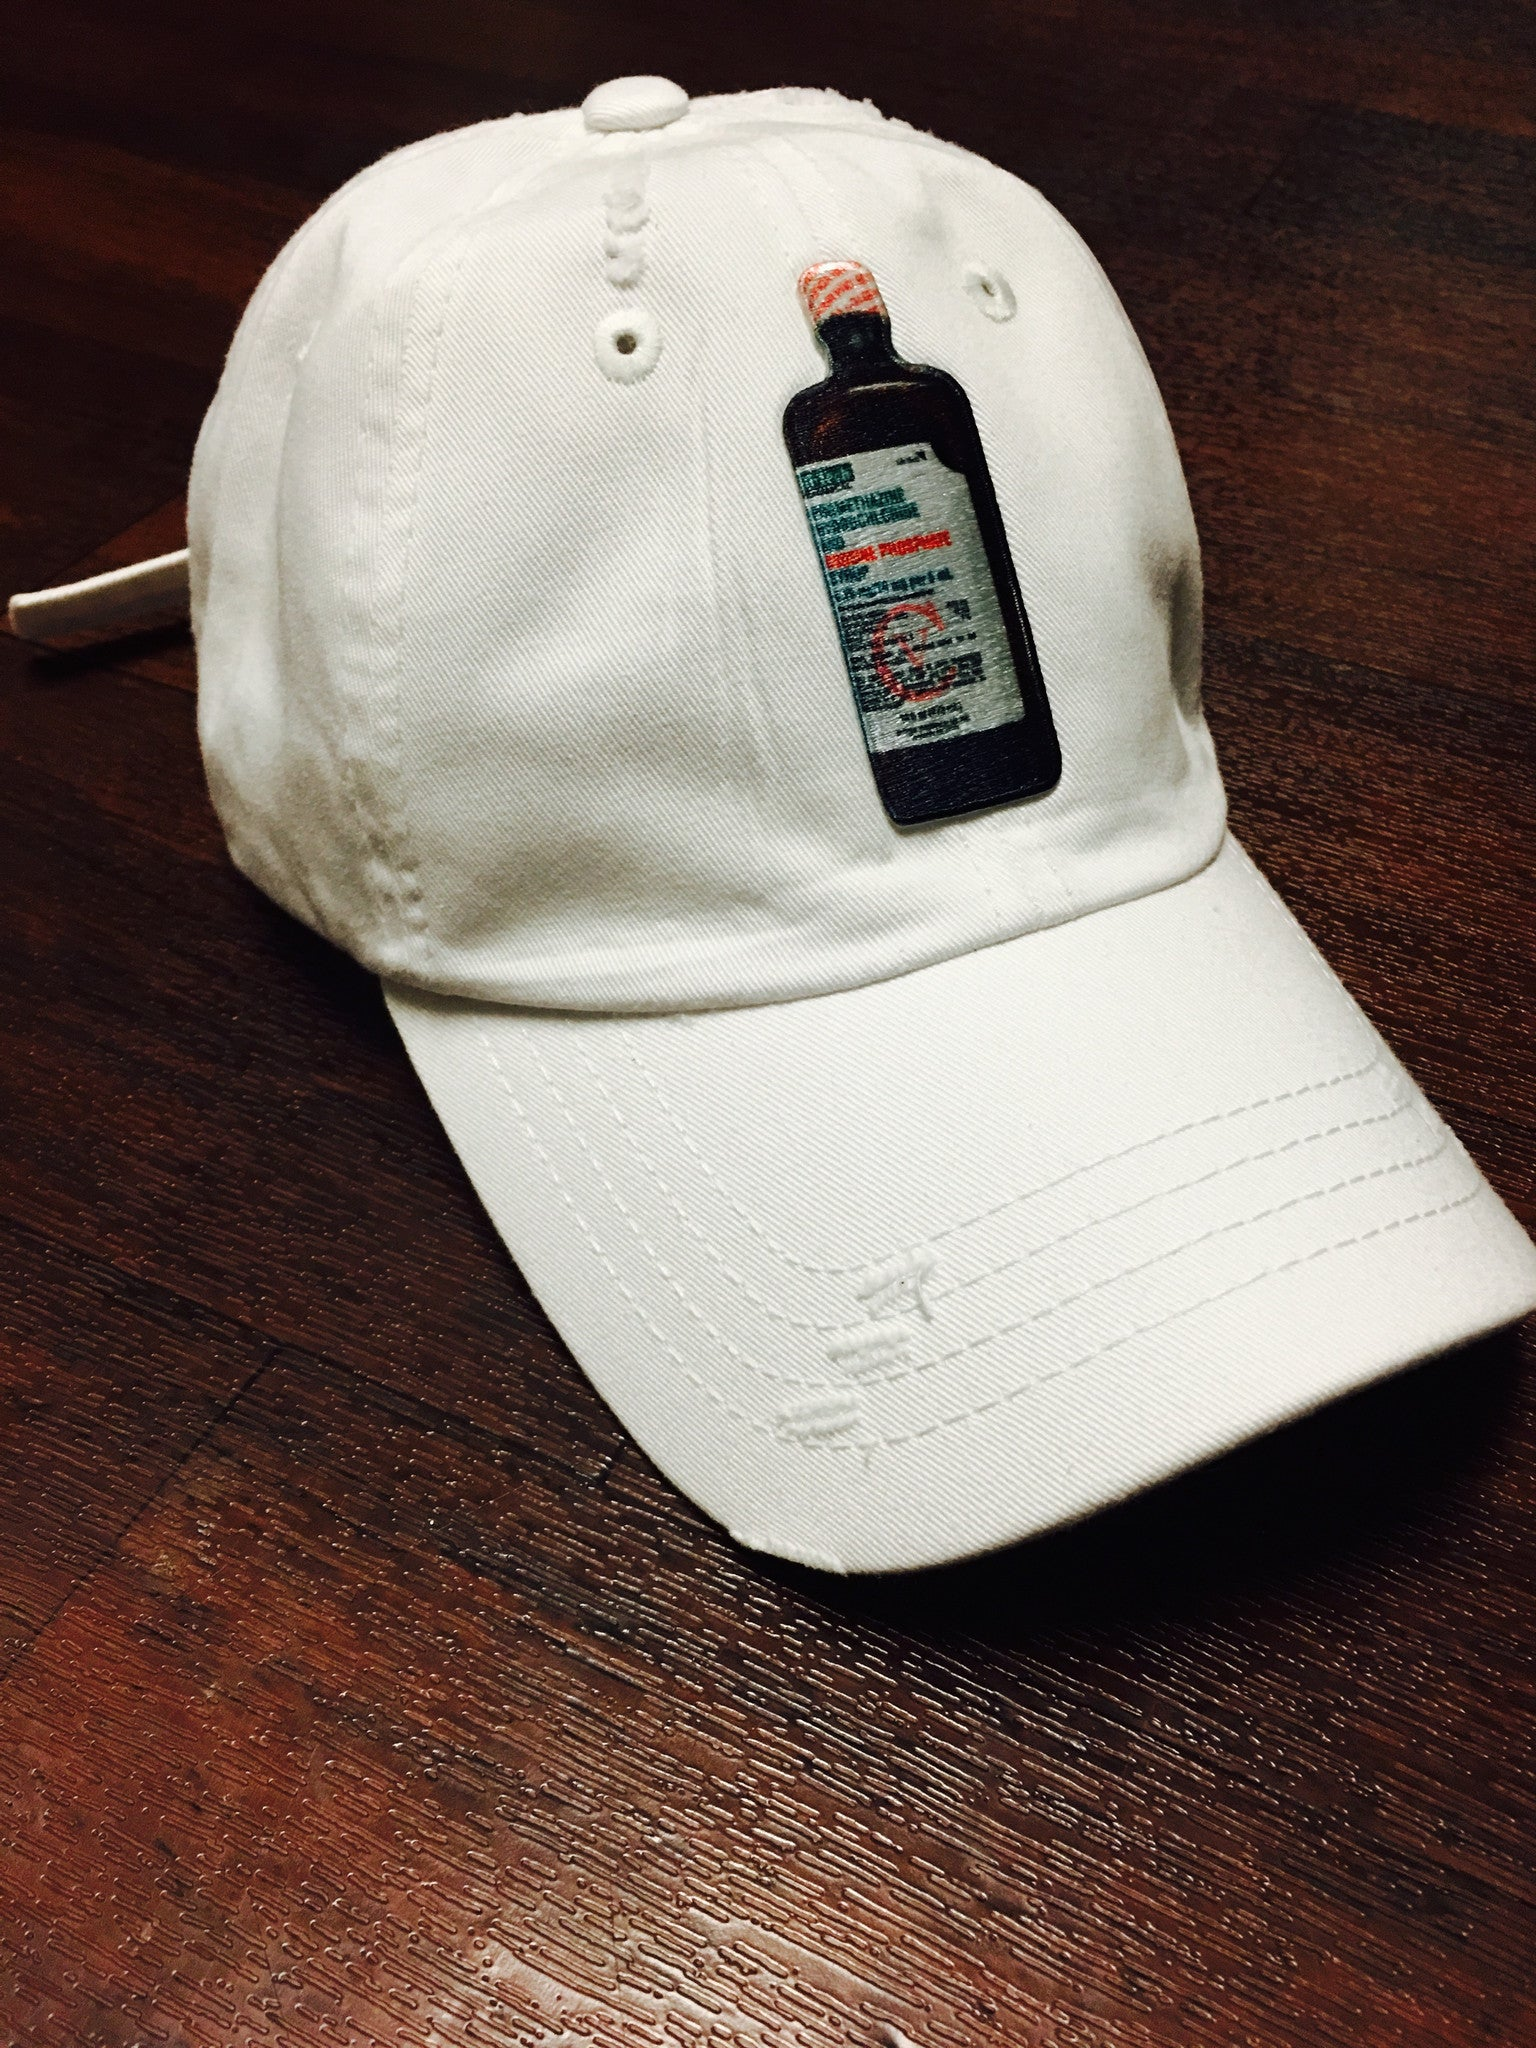 New hitech pint dad hat